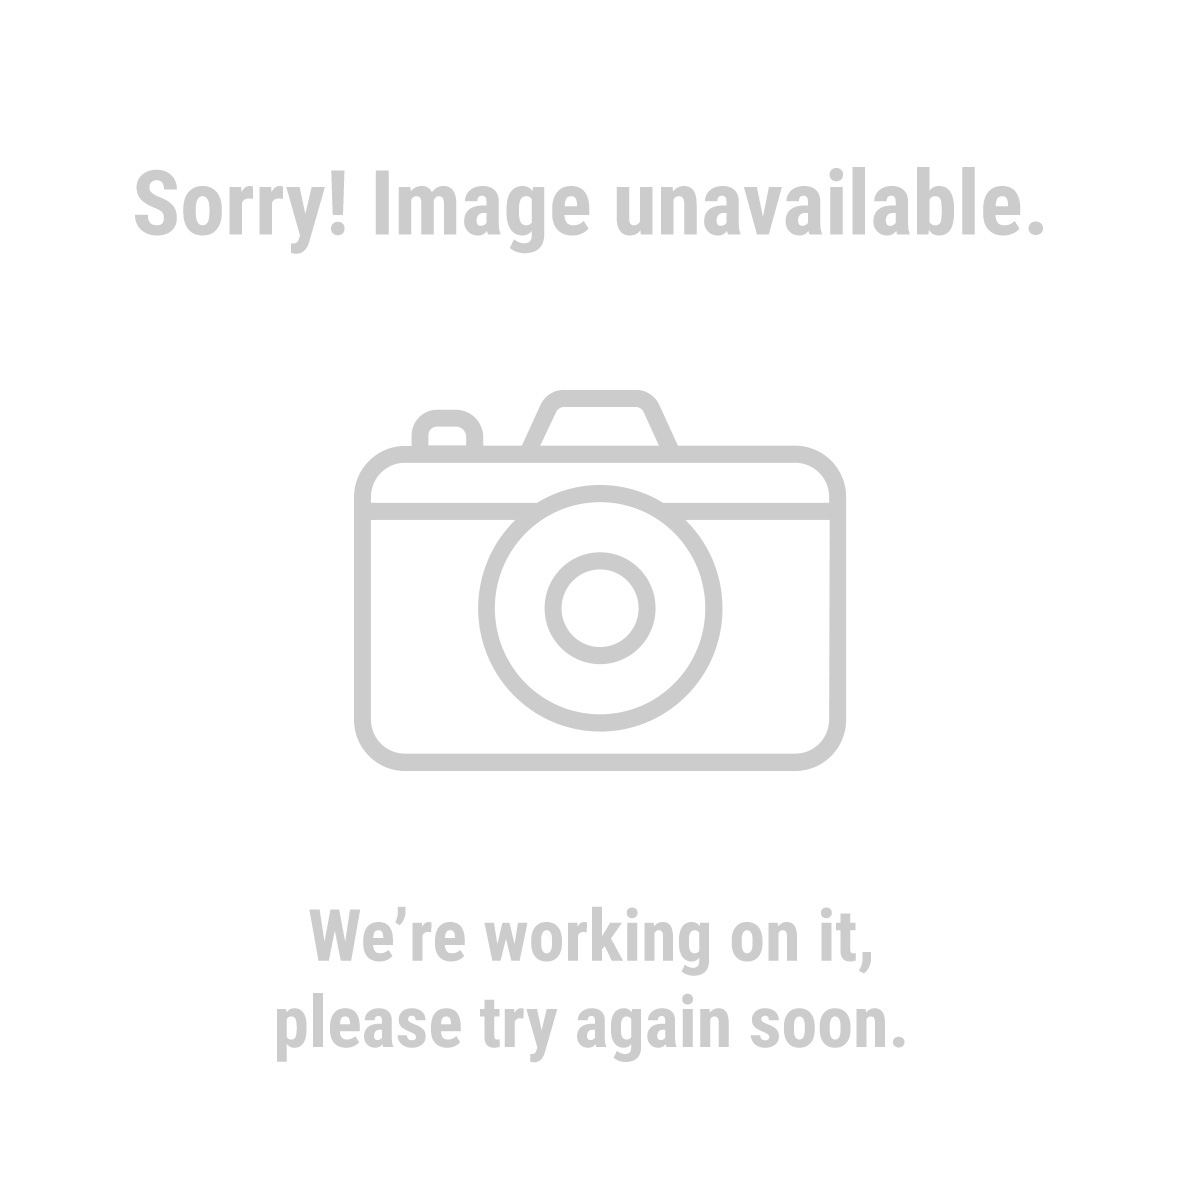 Pittsburgh Professional 67989 10 Piece 1 in. Drive SAE Impact Socket Set